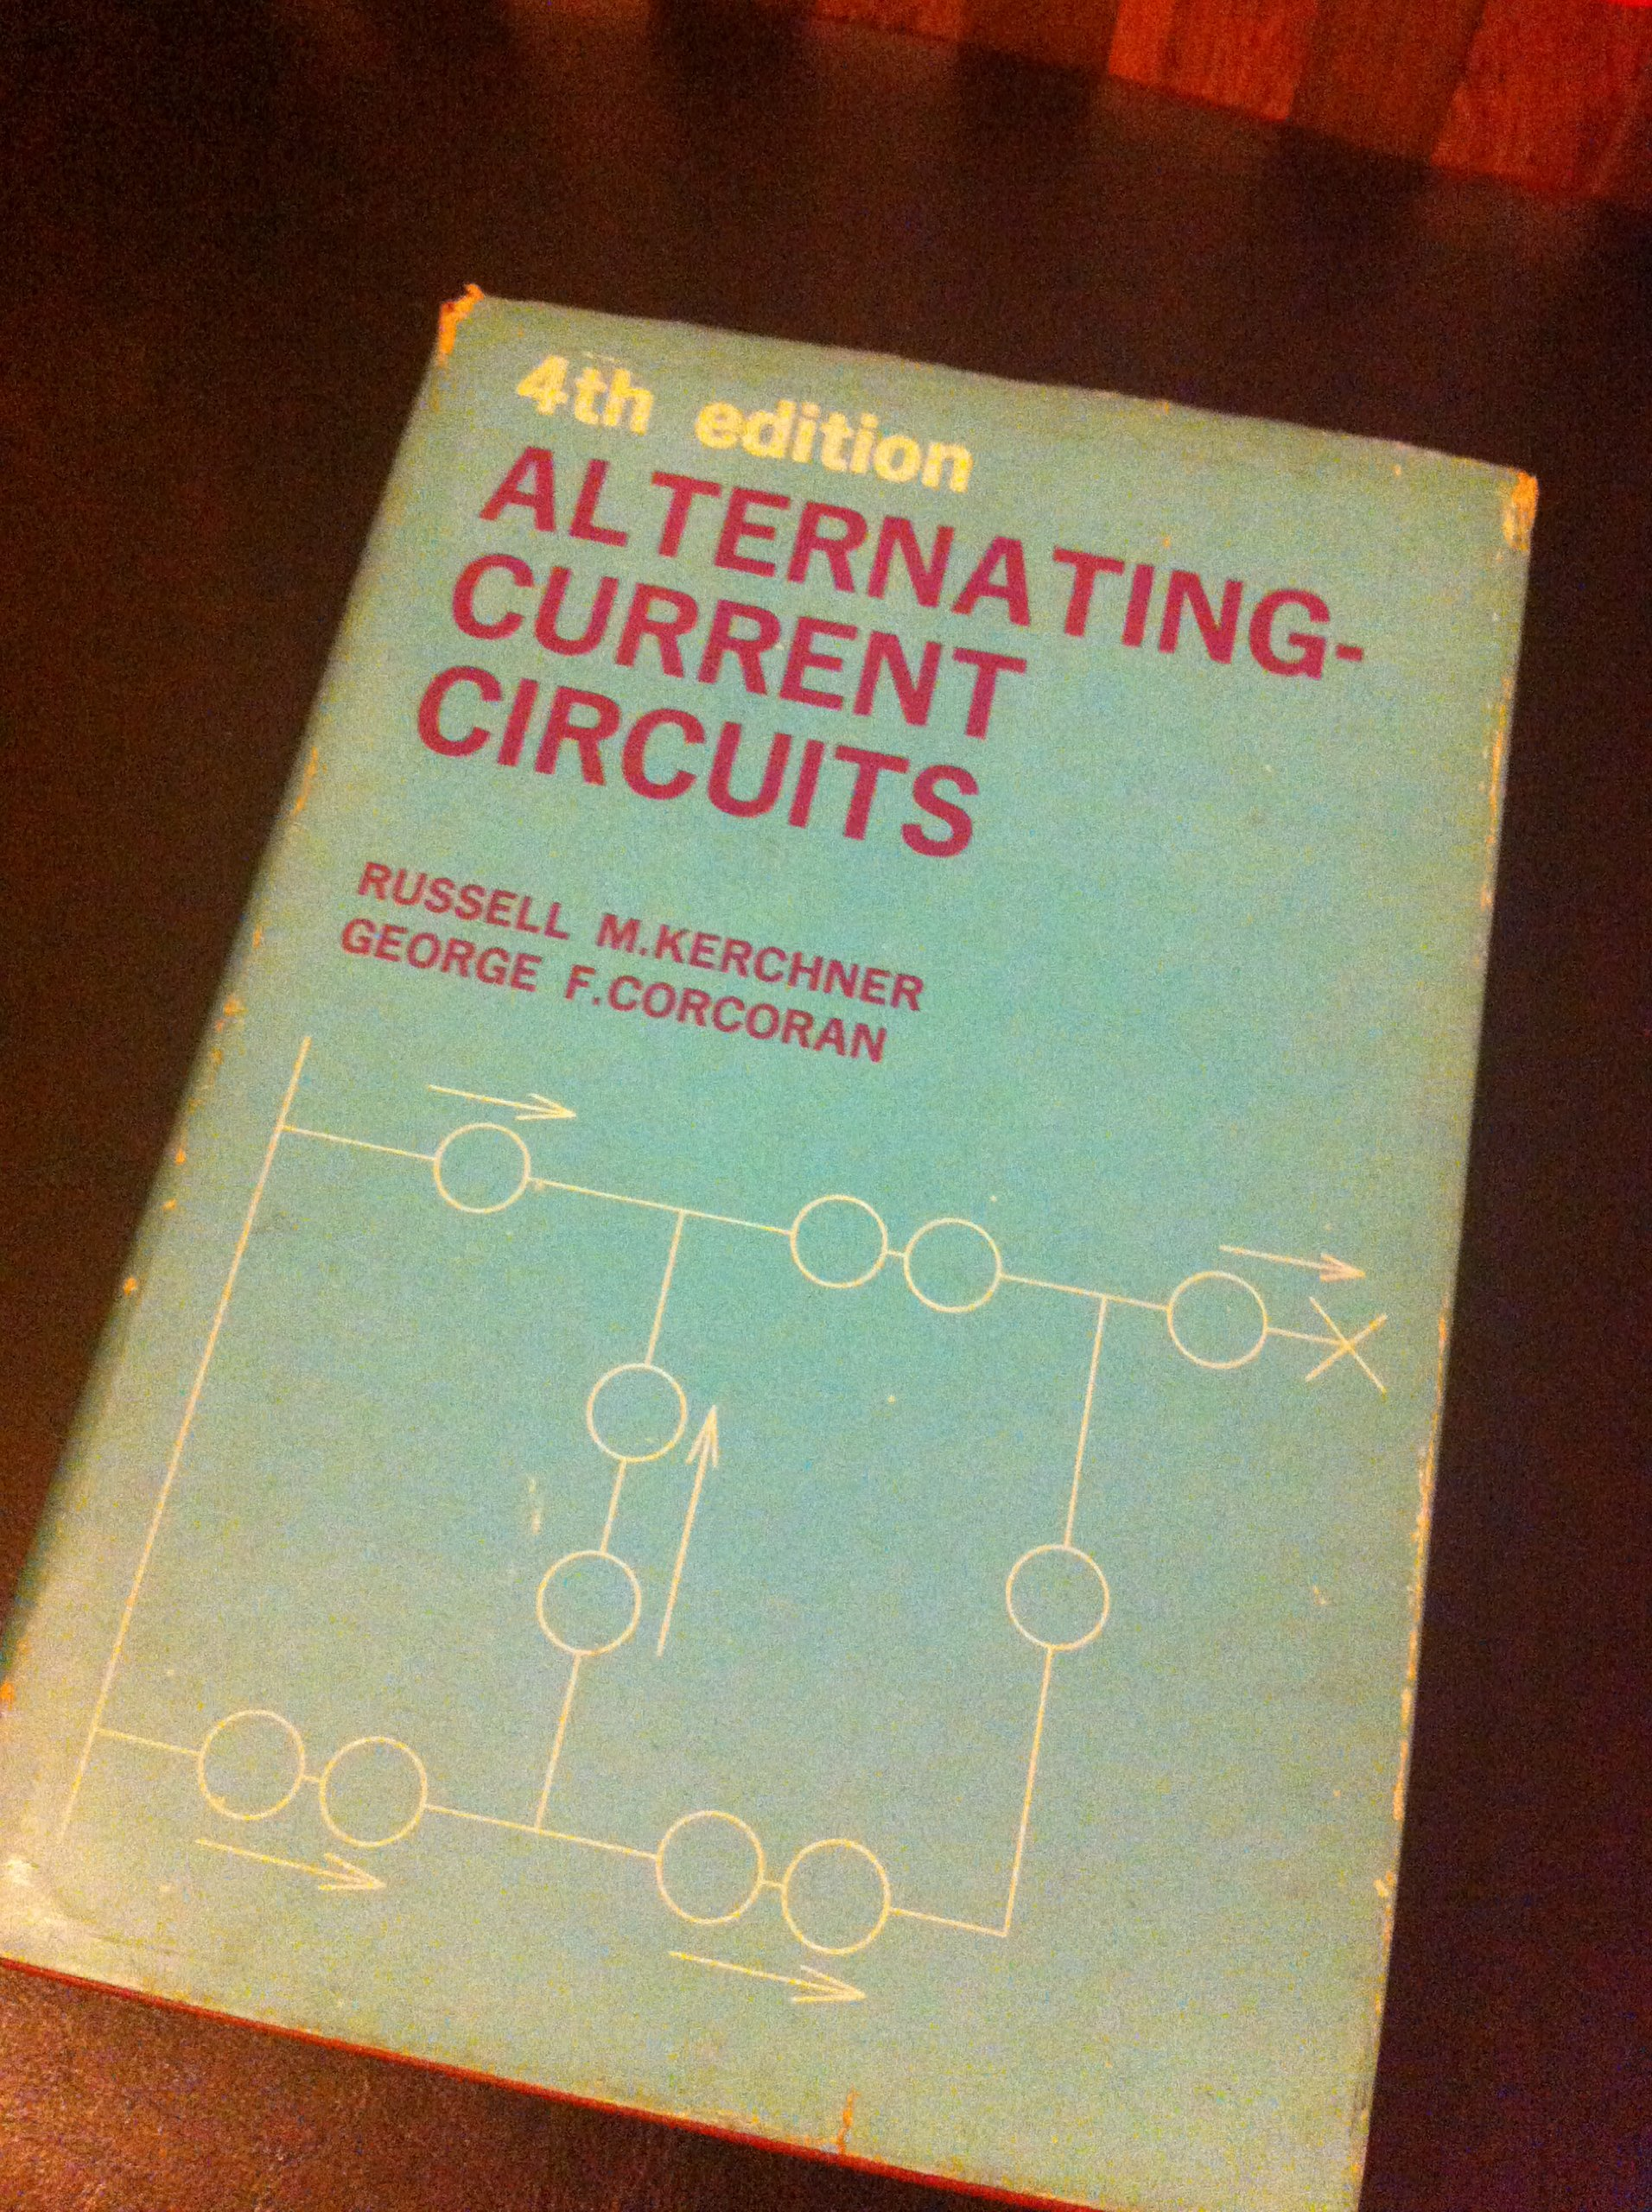 Alternating Current Circuits Russell M Ms And Corcoran George F Kerchner Books